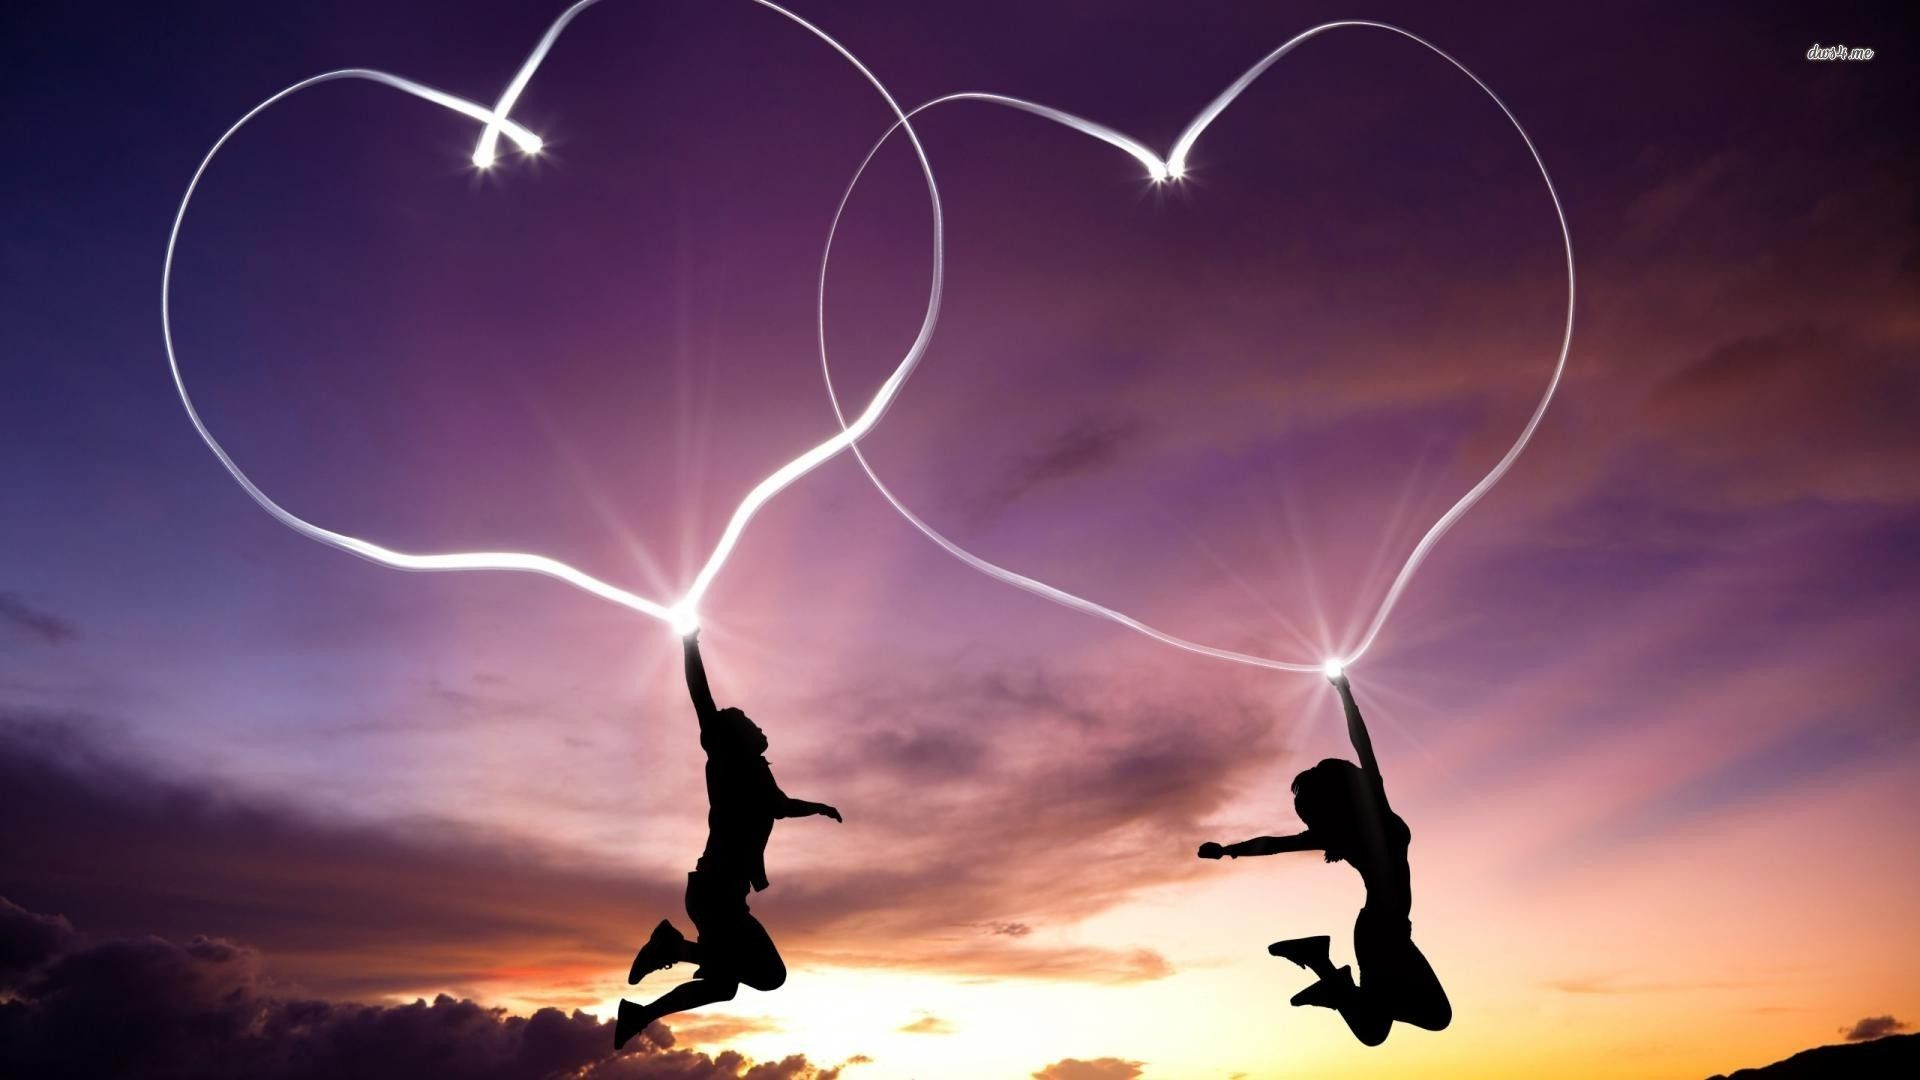 Glowing Hearts Hd Wallpaper Love Wallpaper Download Love